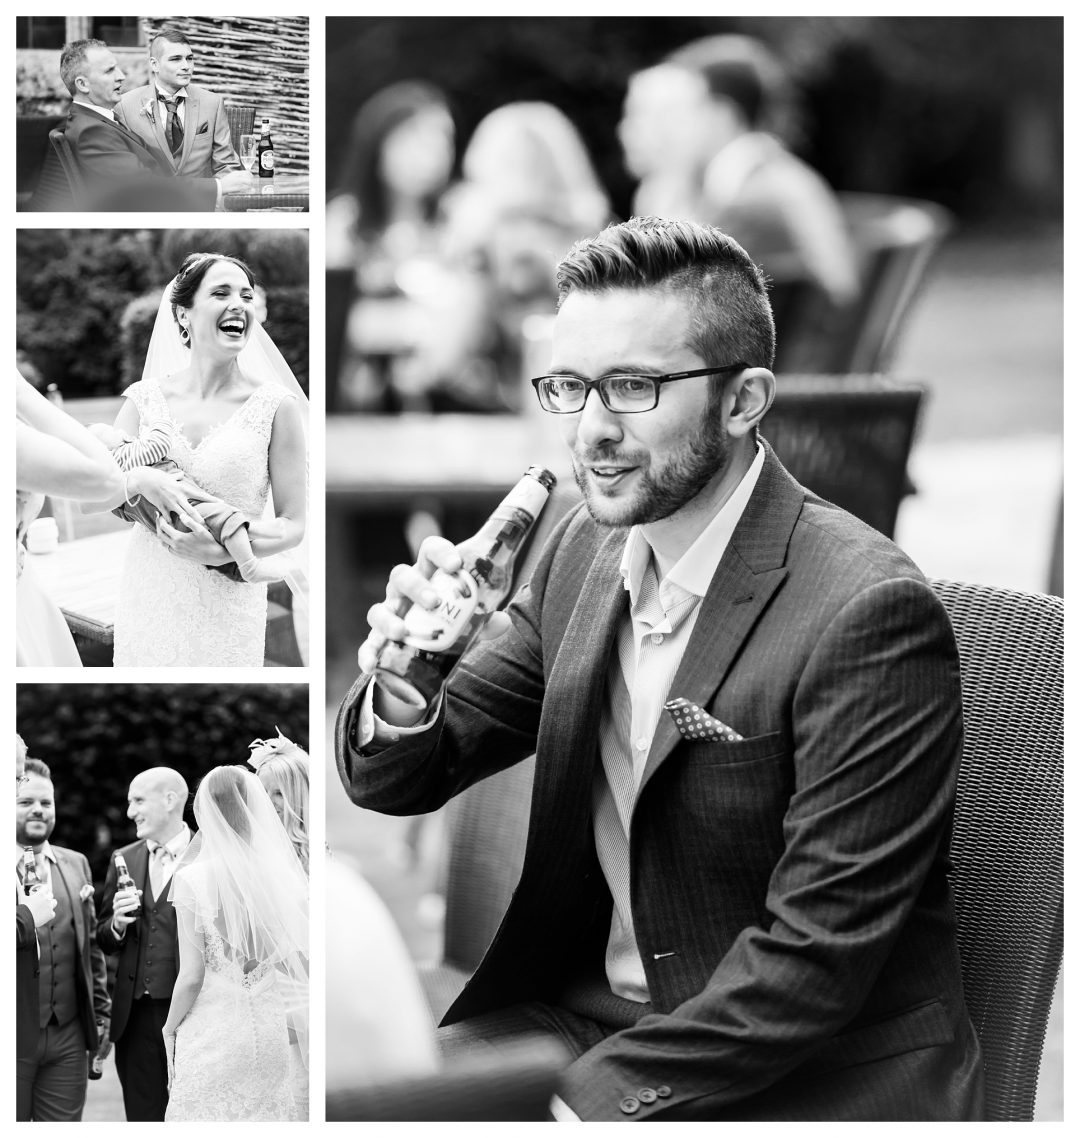 Matt & Laura's Wedding - weddings - nkimphotogrphy com notting hill 0538